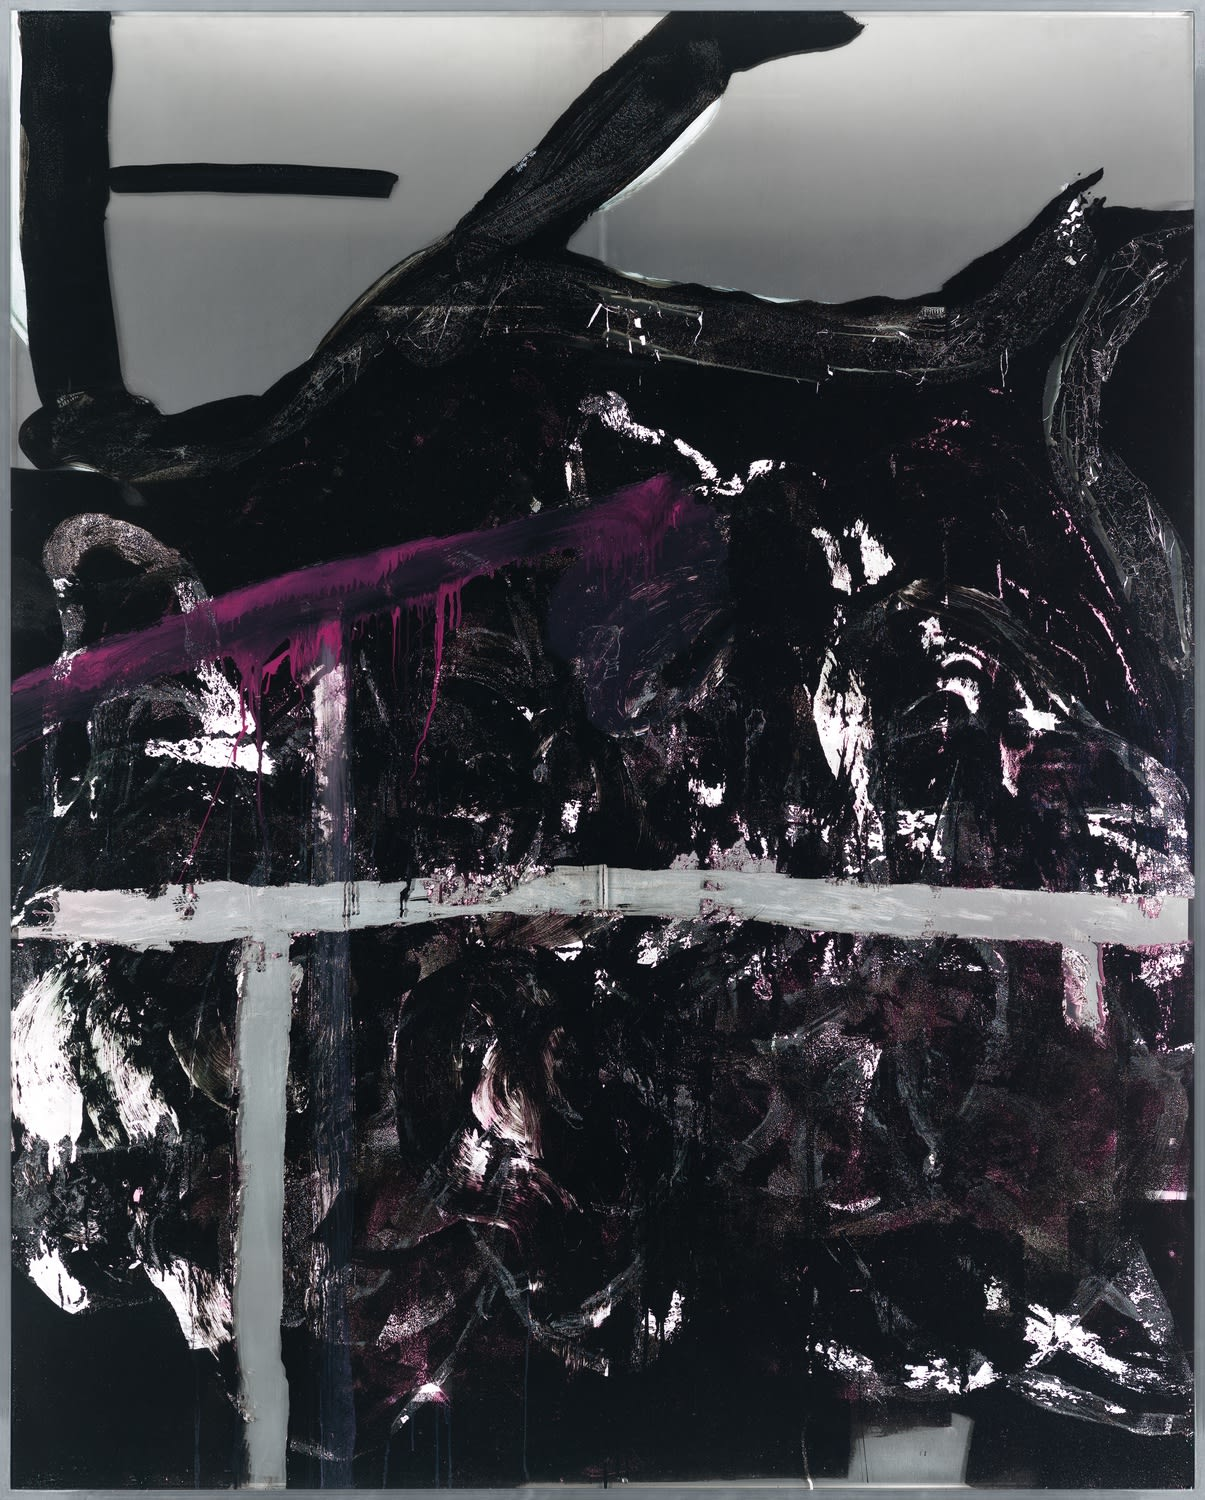 Dekonstruktion von Radikal 153 (Haut), 2019/2020 Acrylic, lacquer and gesso on glass and aluminum 203 x 163 cm | 80 x 64 1/4 in